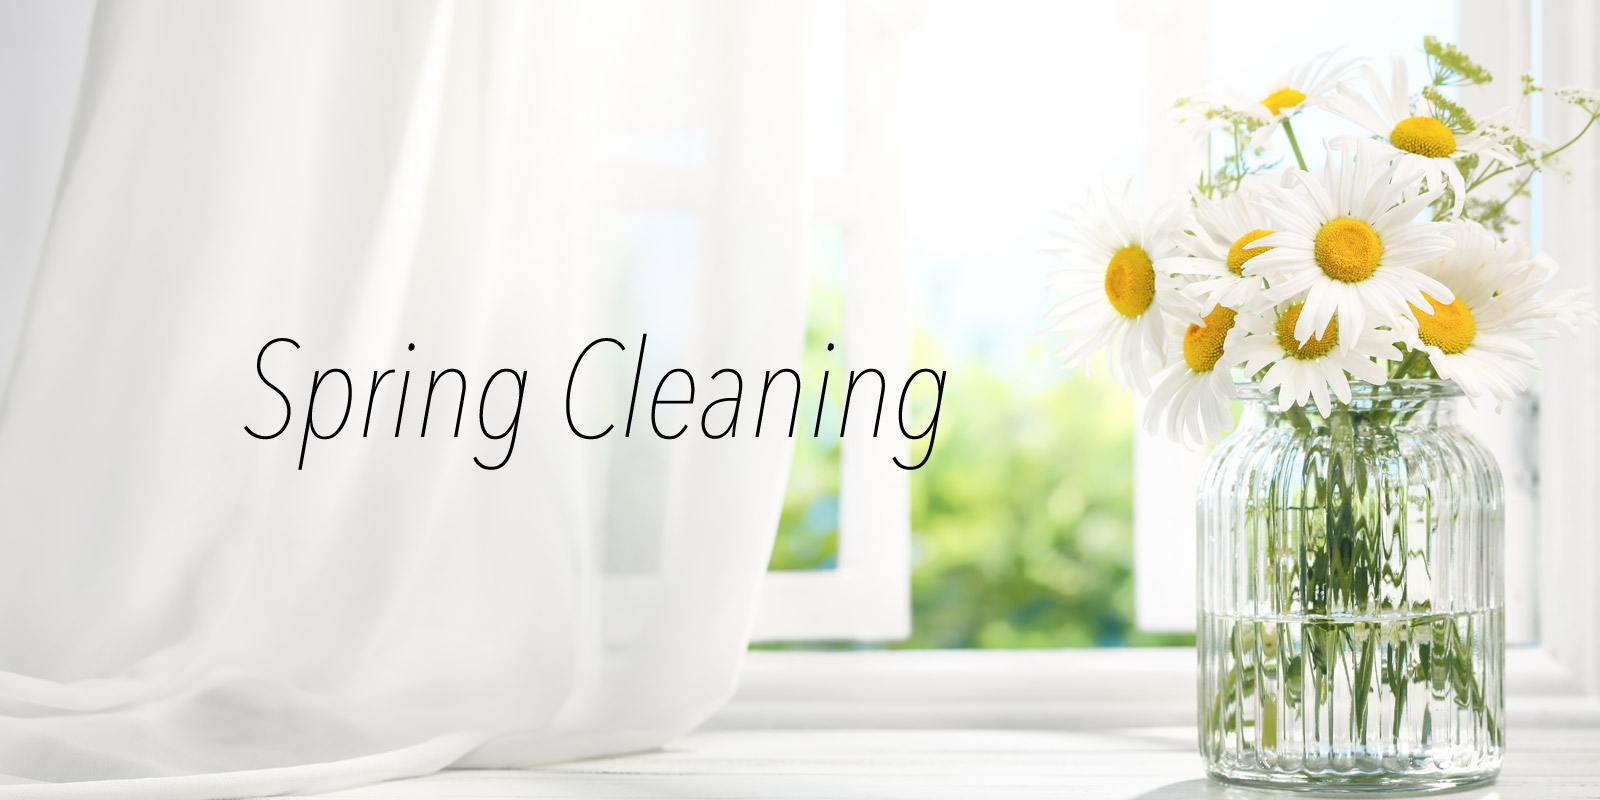 Easter Vacation Is A Great Opportunity To Spring Clean